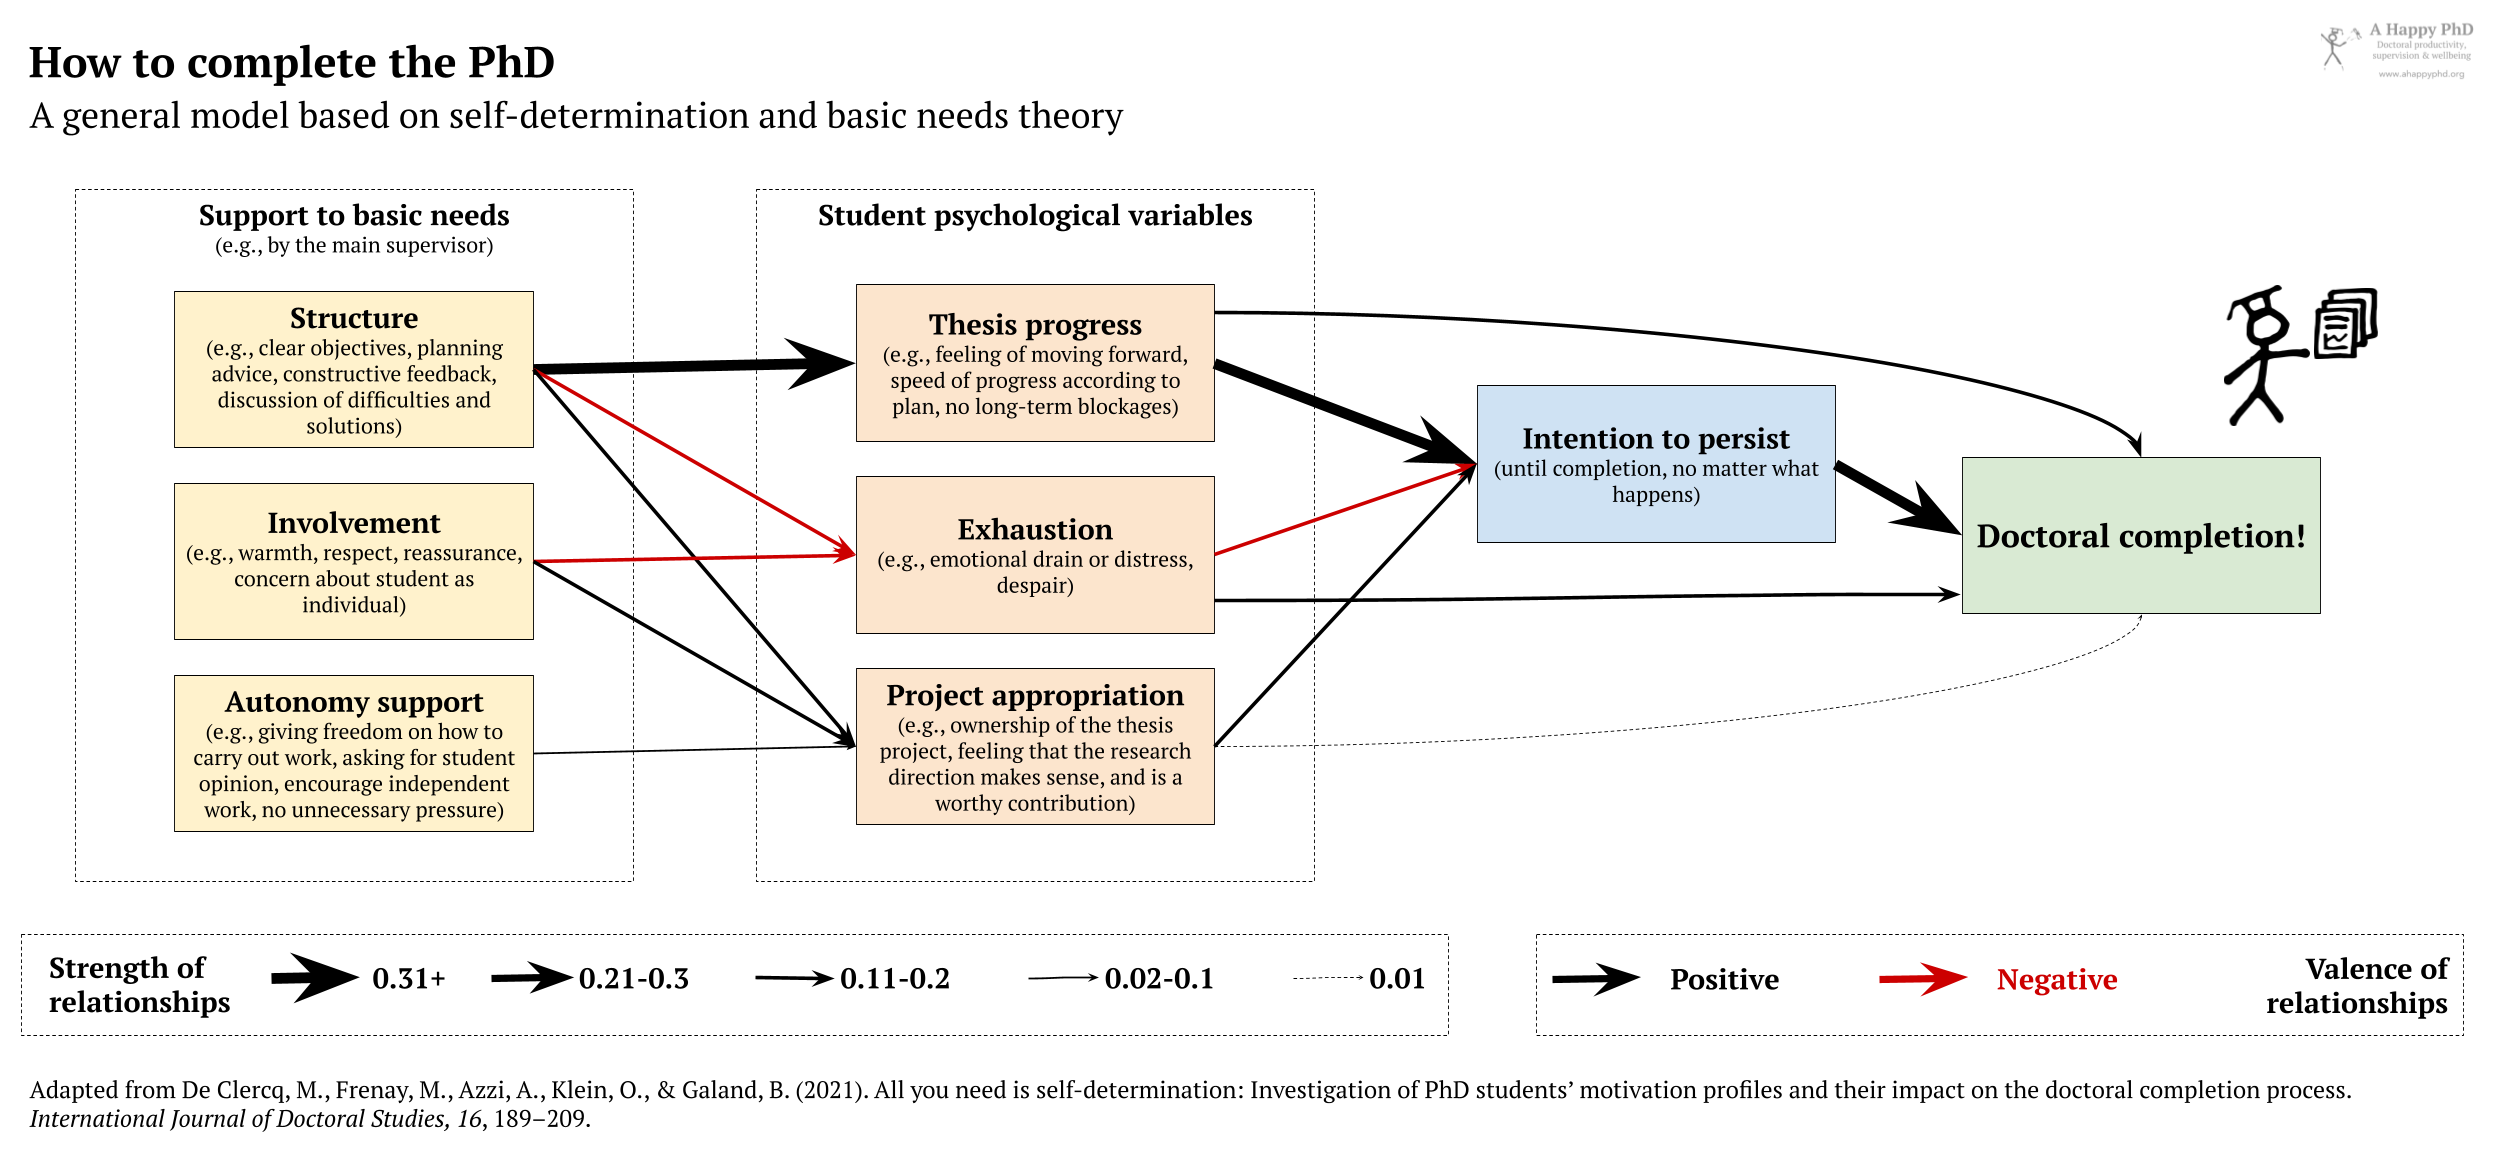 A diagram representing the model of factors that relate to doctoral completion, according to the study by DeClerq et al. (2021)